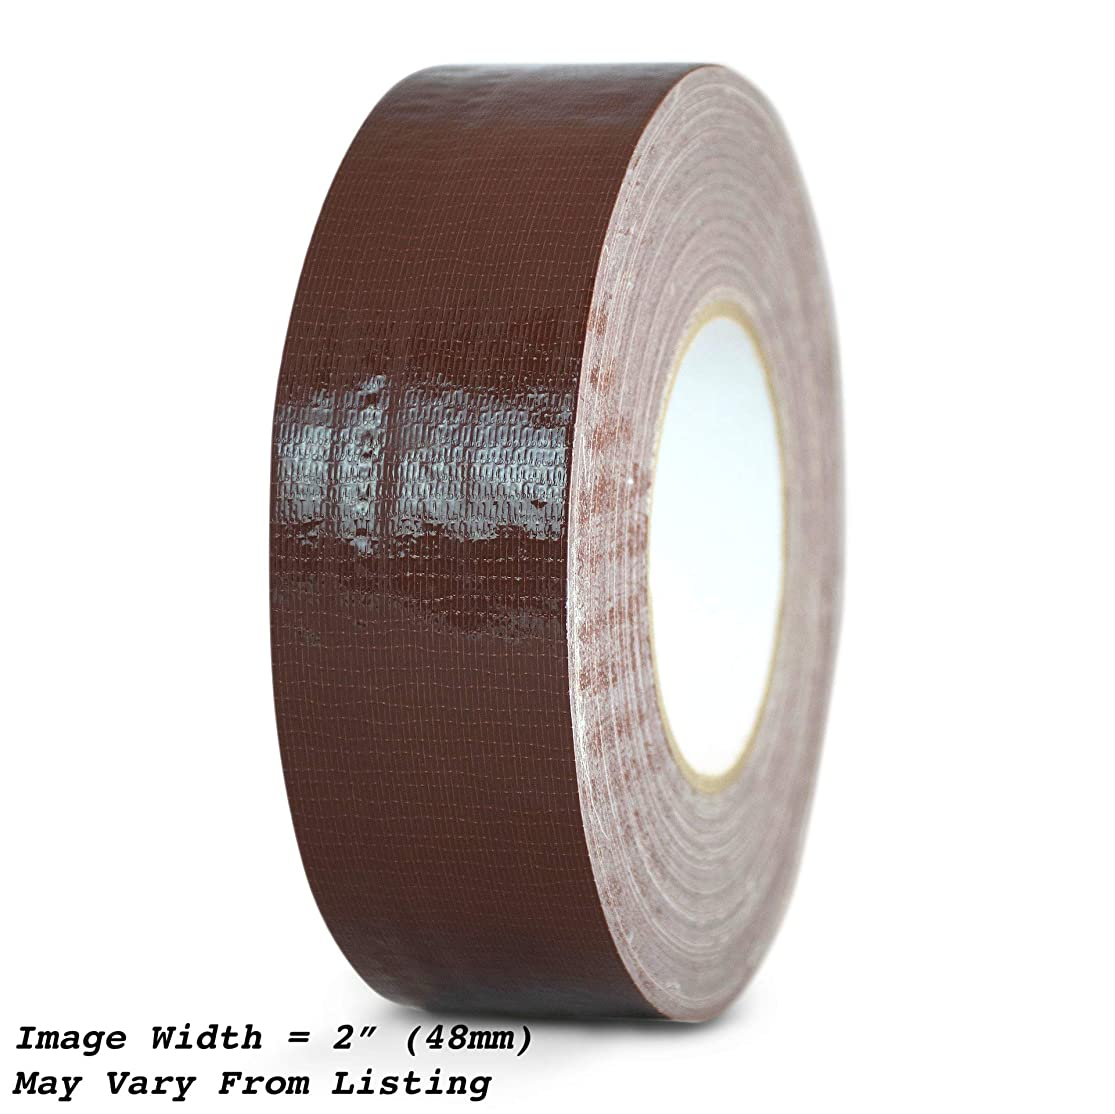 MAT Duct Tape Burgundy Industrial Grade - 5 in. x 60 yds. - Waterproof, UV Resistant for Crafts, Home Improvement, Repairs, Projects (Available in Multiple Colors) bsqpuwtf2